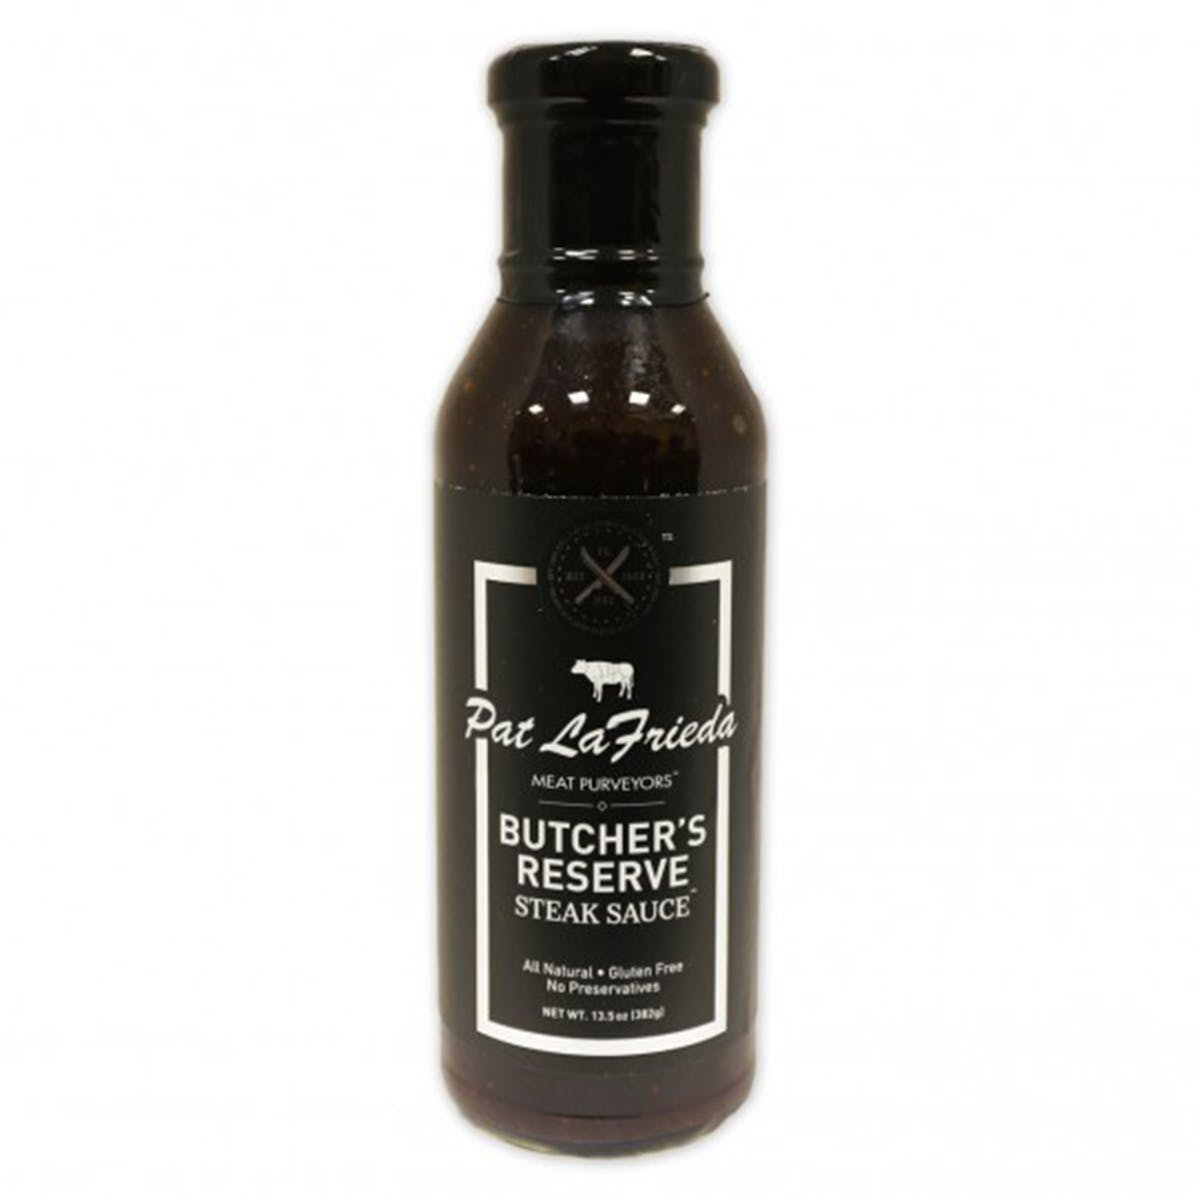 Pat Lafrieda Butcher S Reserve Steak Sauce By Pat Lafrieda Meats Goldbelly